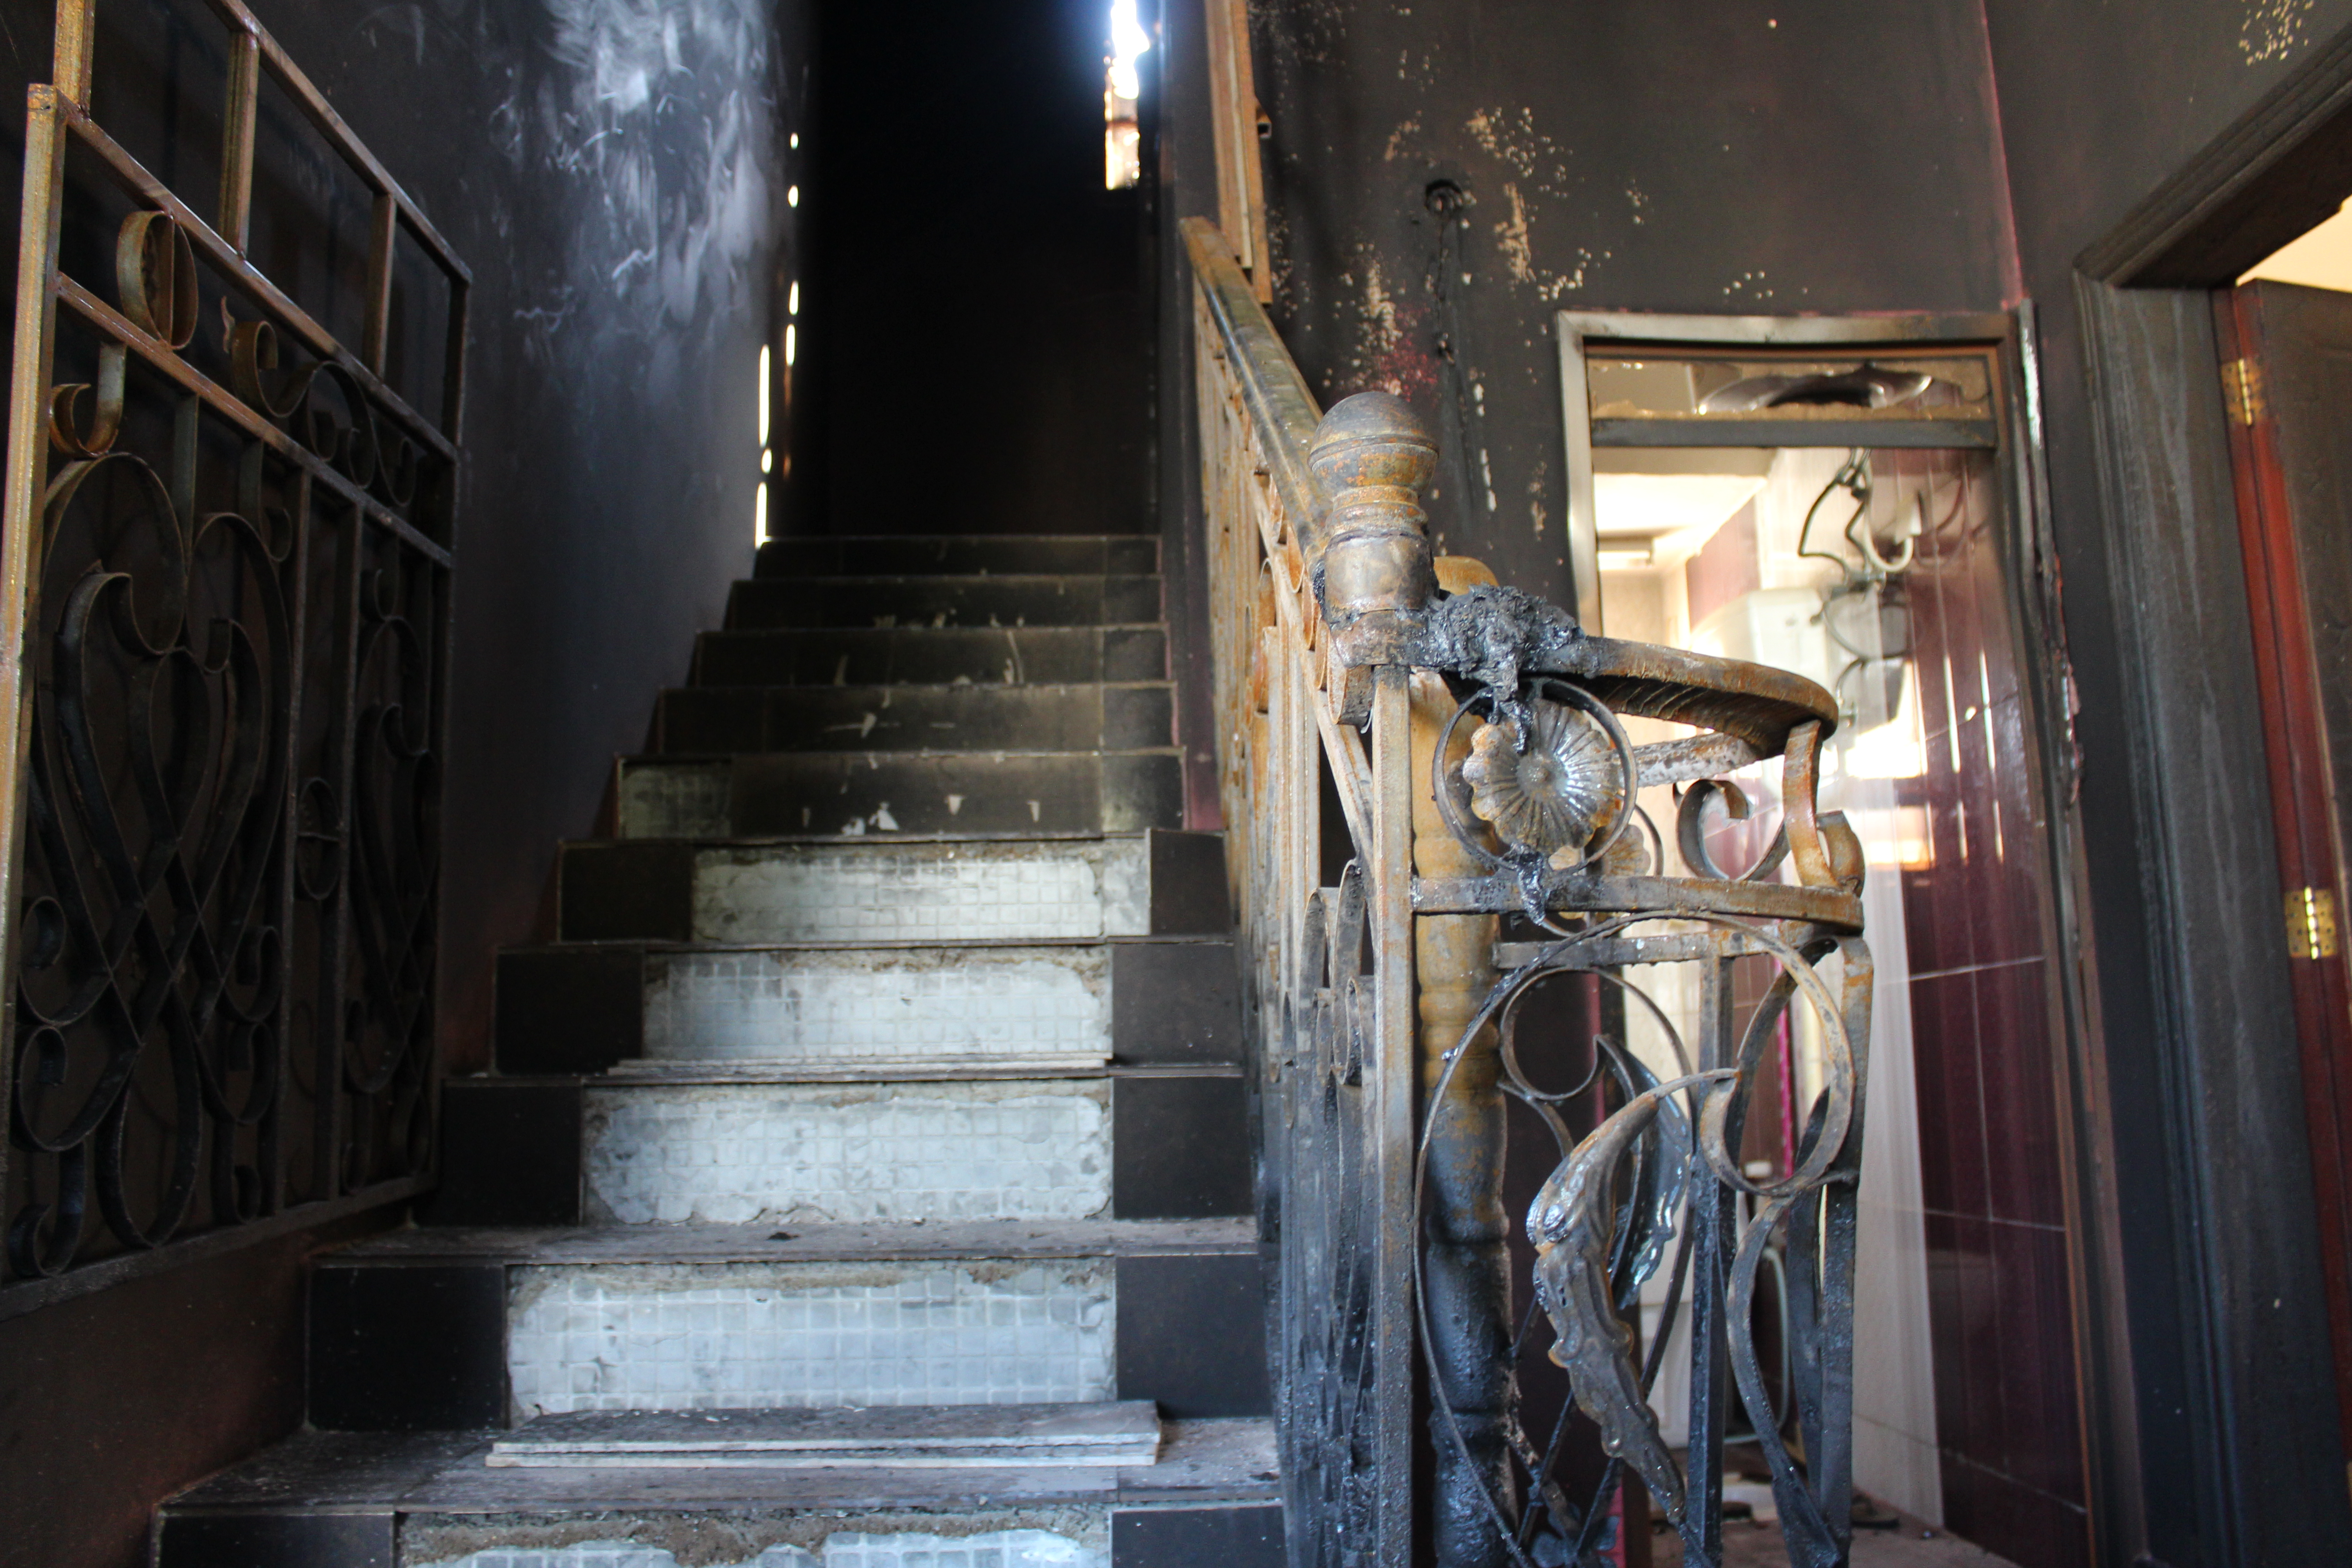 In pictures: Inside the house that went up in flames, killing eight